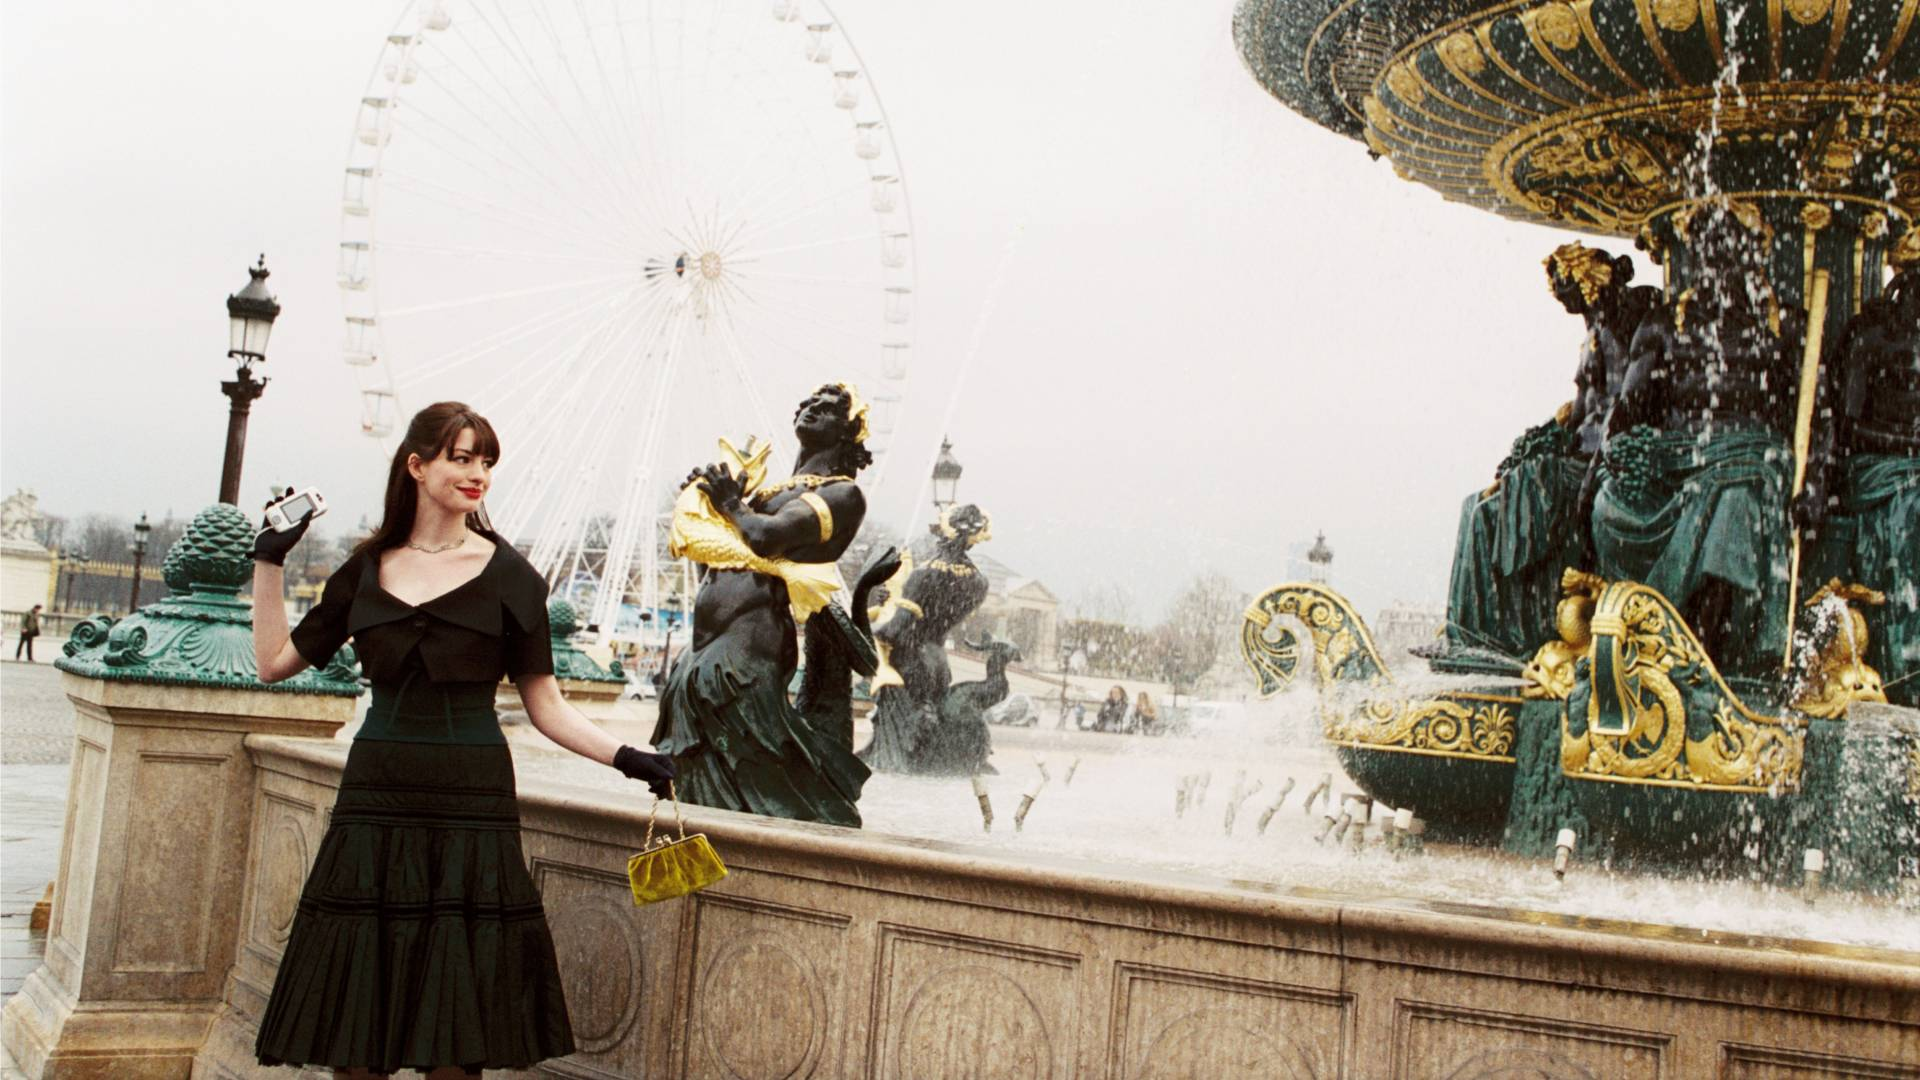 anne hathaway in the devil wears parada throws her phone into a fountain in paris after quitting her job